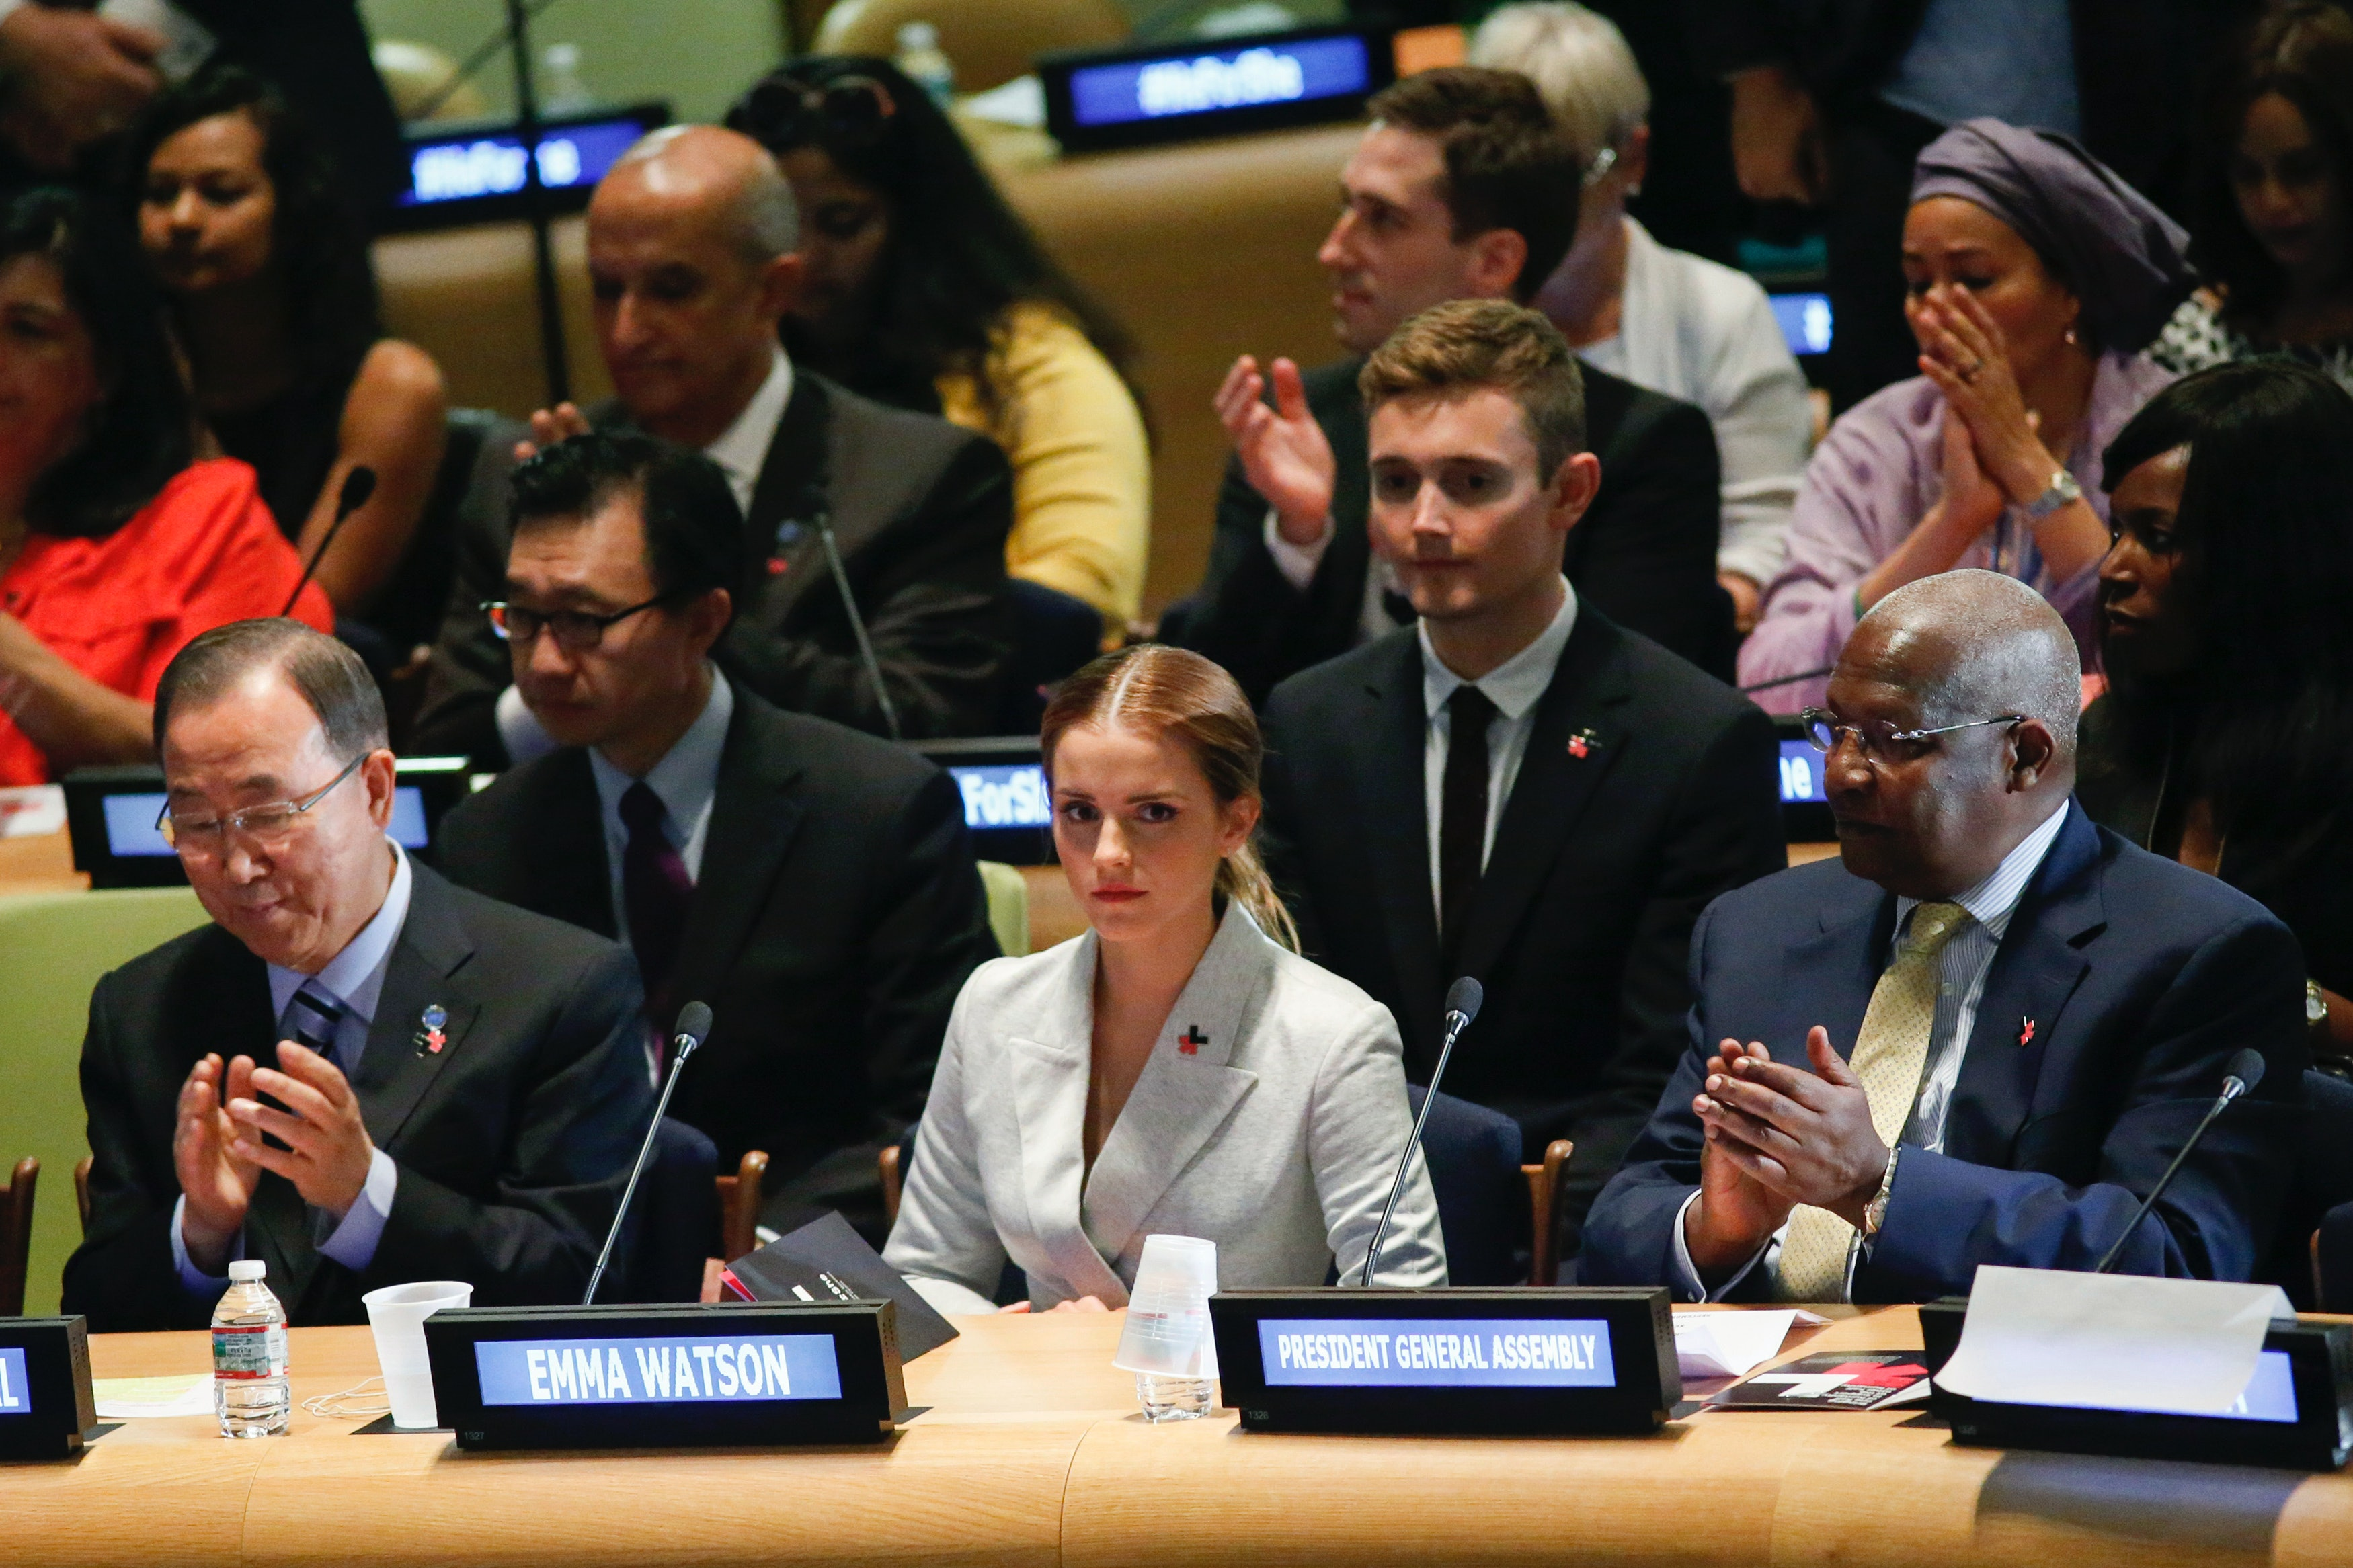 9 Most Powerful Quotes From Emma Watson's UN Speech on Gender